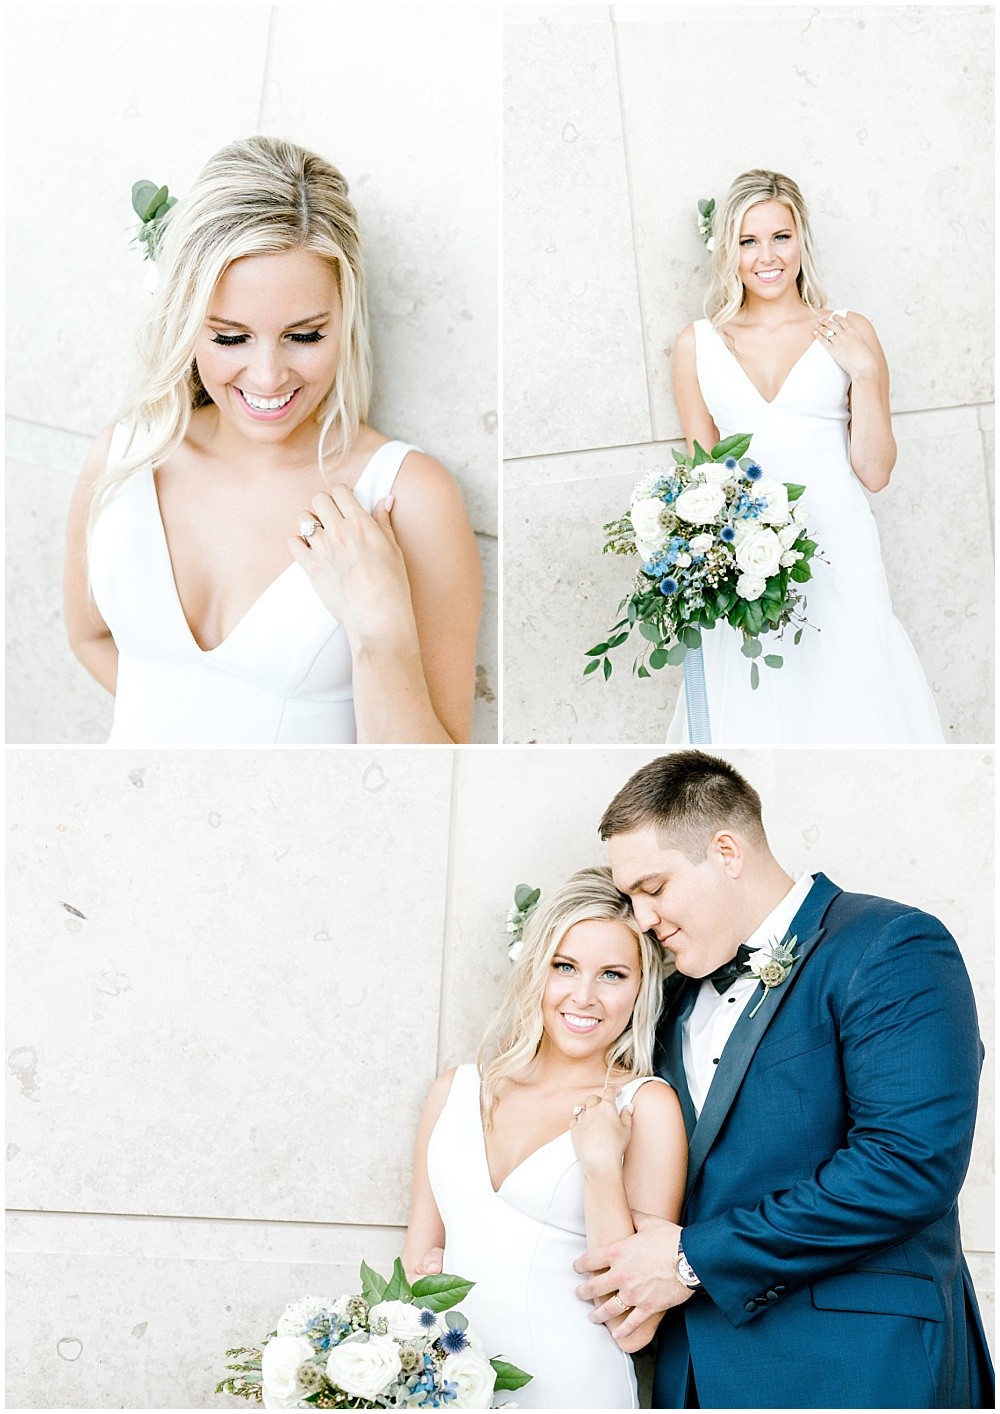 Bride and groom garden portraits; white v-neck bridal gown; navy groom's suit | NFL Player Nick Martin's rustic chic summer wedding at the Biltwell Event Center